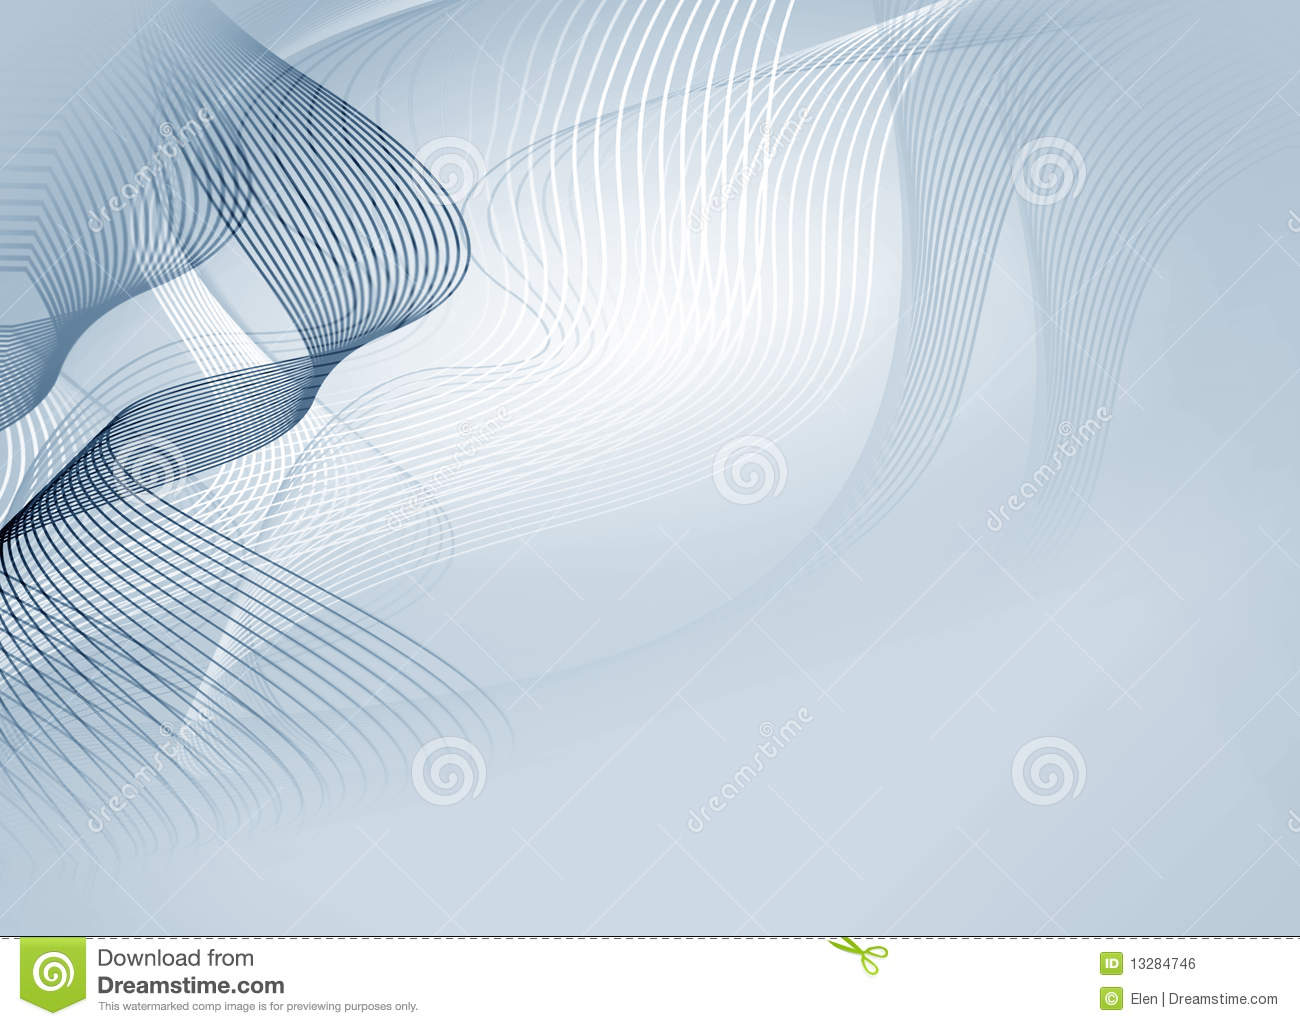 Fond d 39 abstraction pour la carte illustration stock for Image pour fond